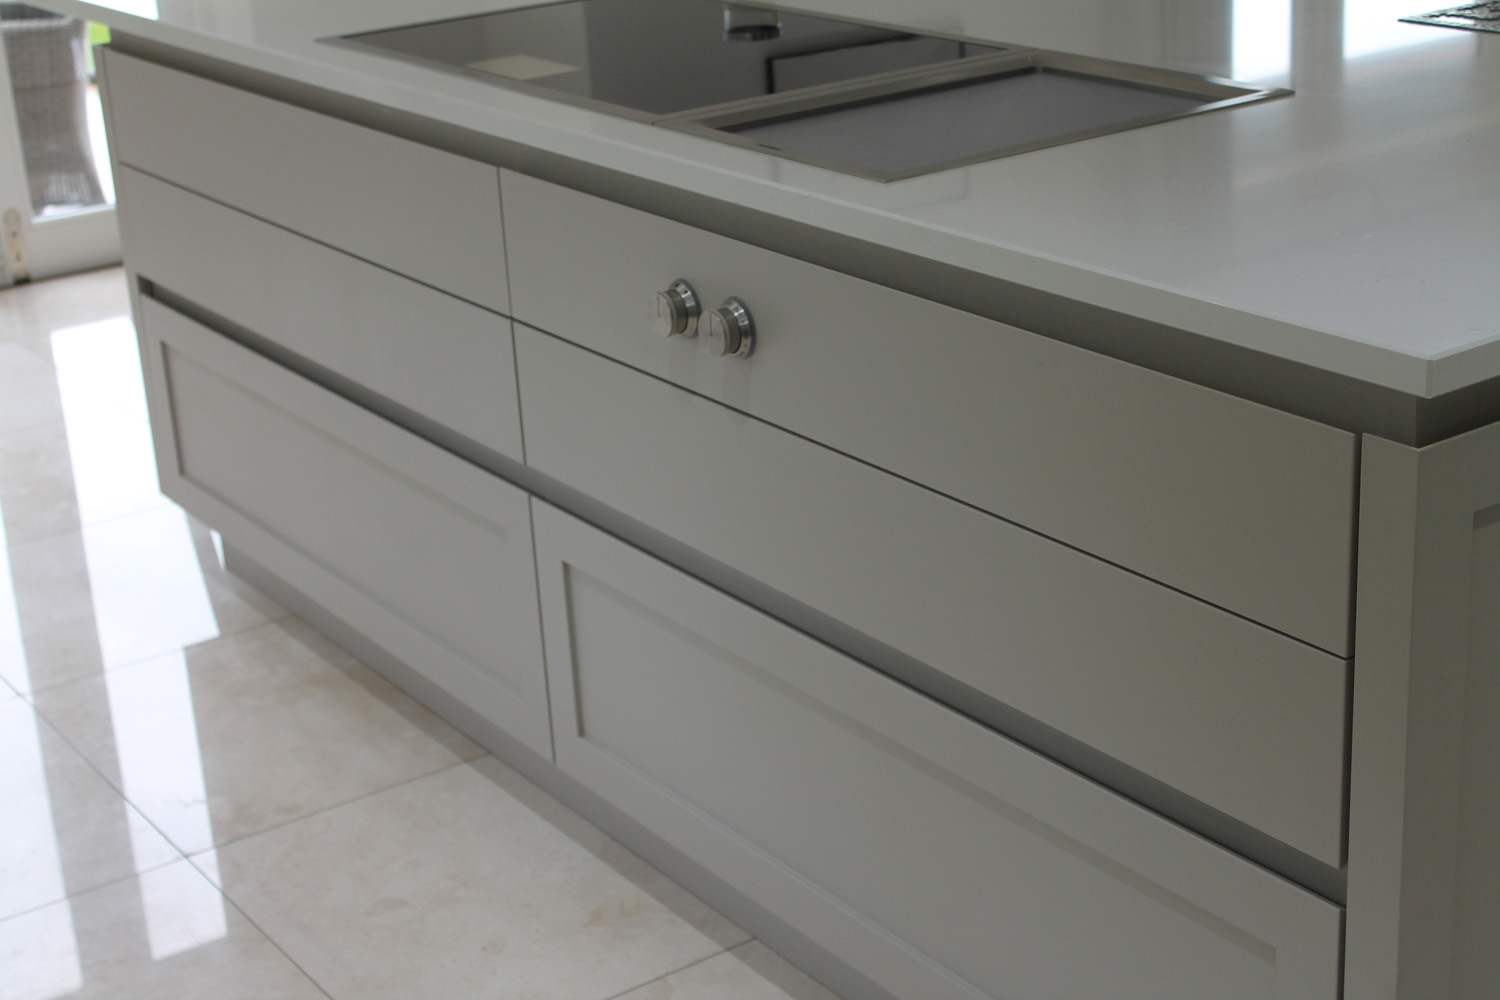 Contemporary shaker style handle-less kitchen